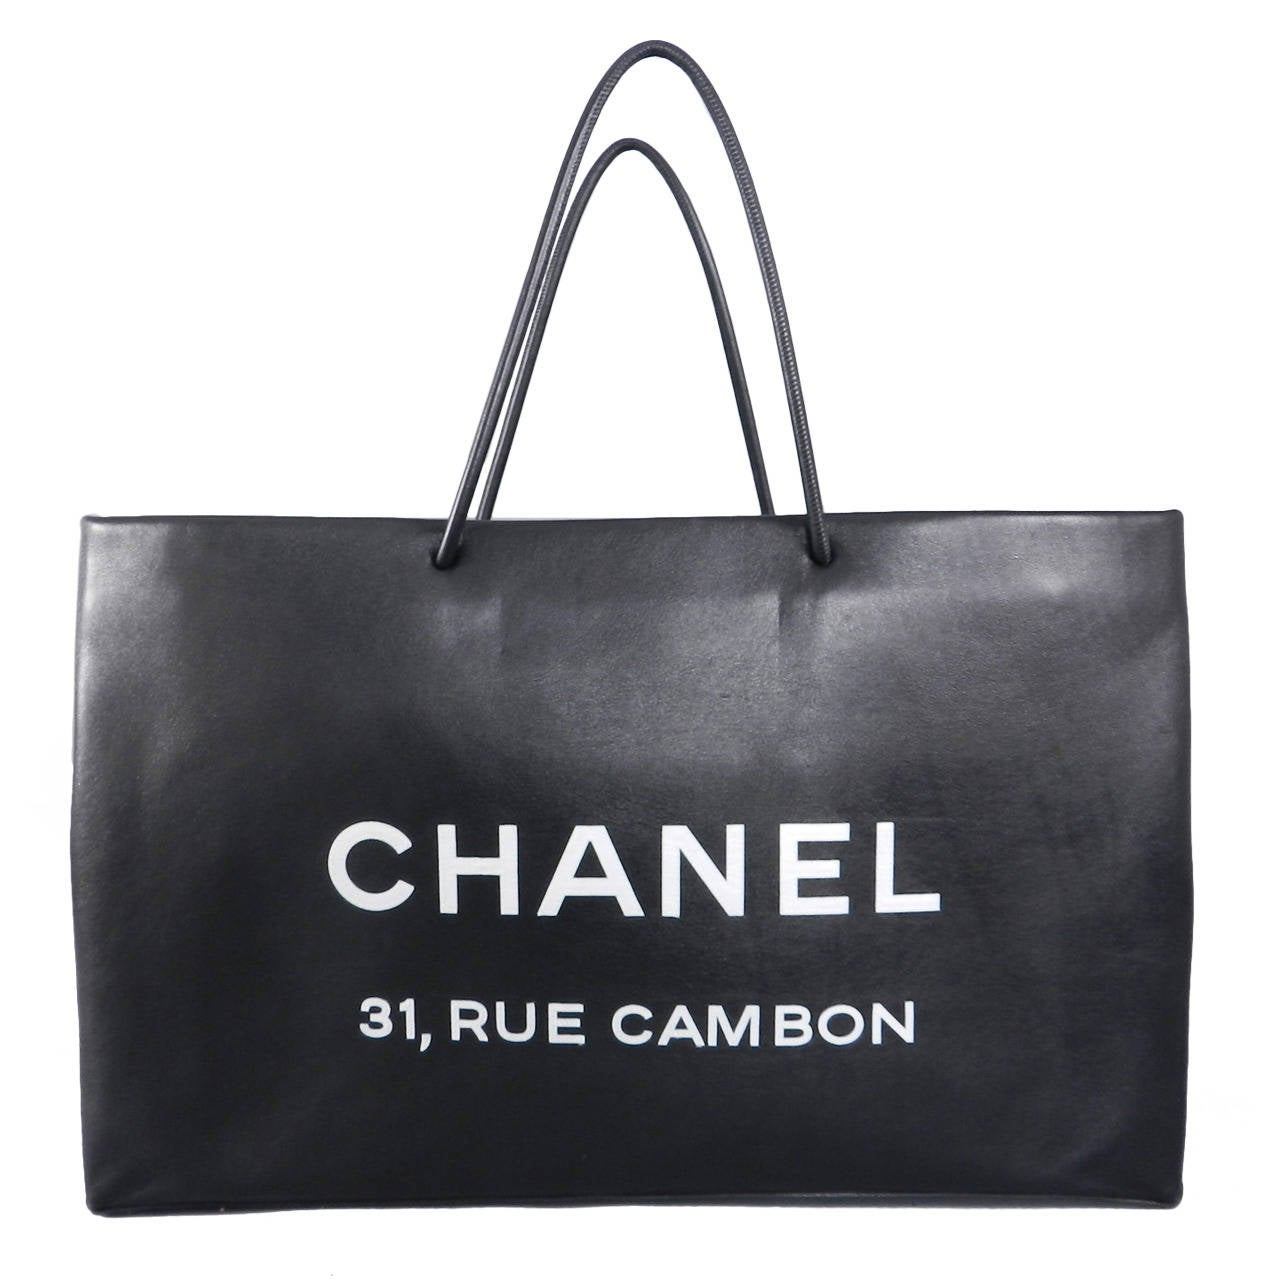 Chanel bag shop online